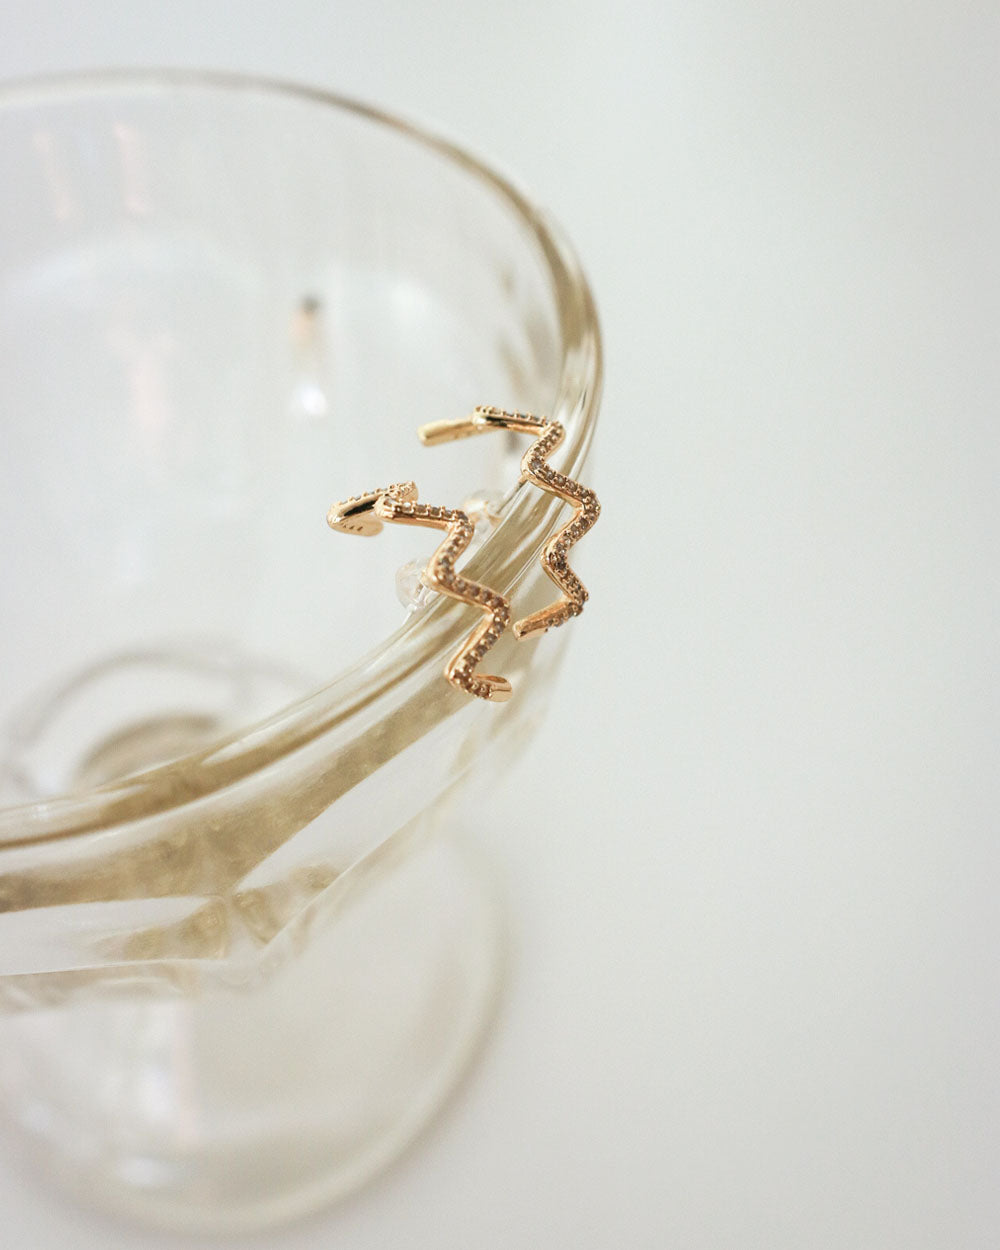 Serpent Suspender Earrings by The Hexad